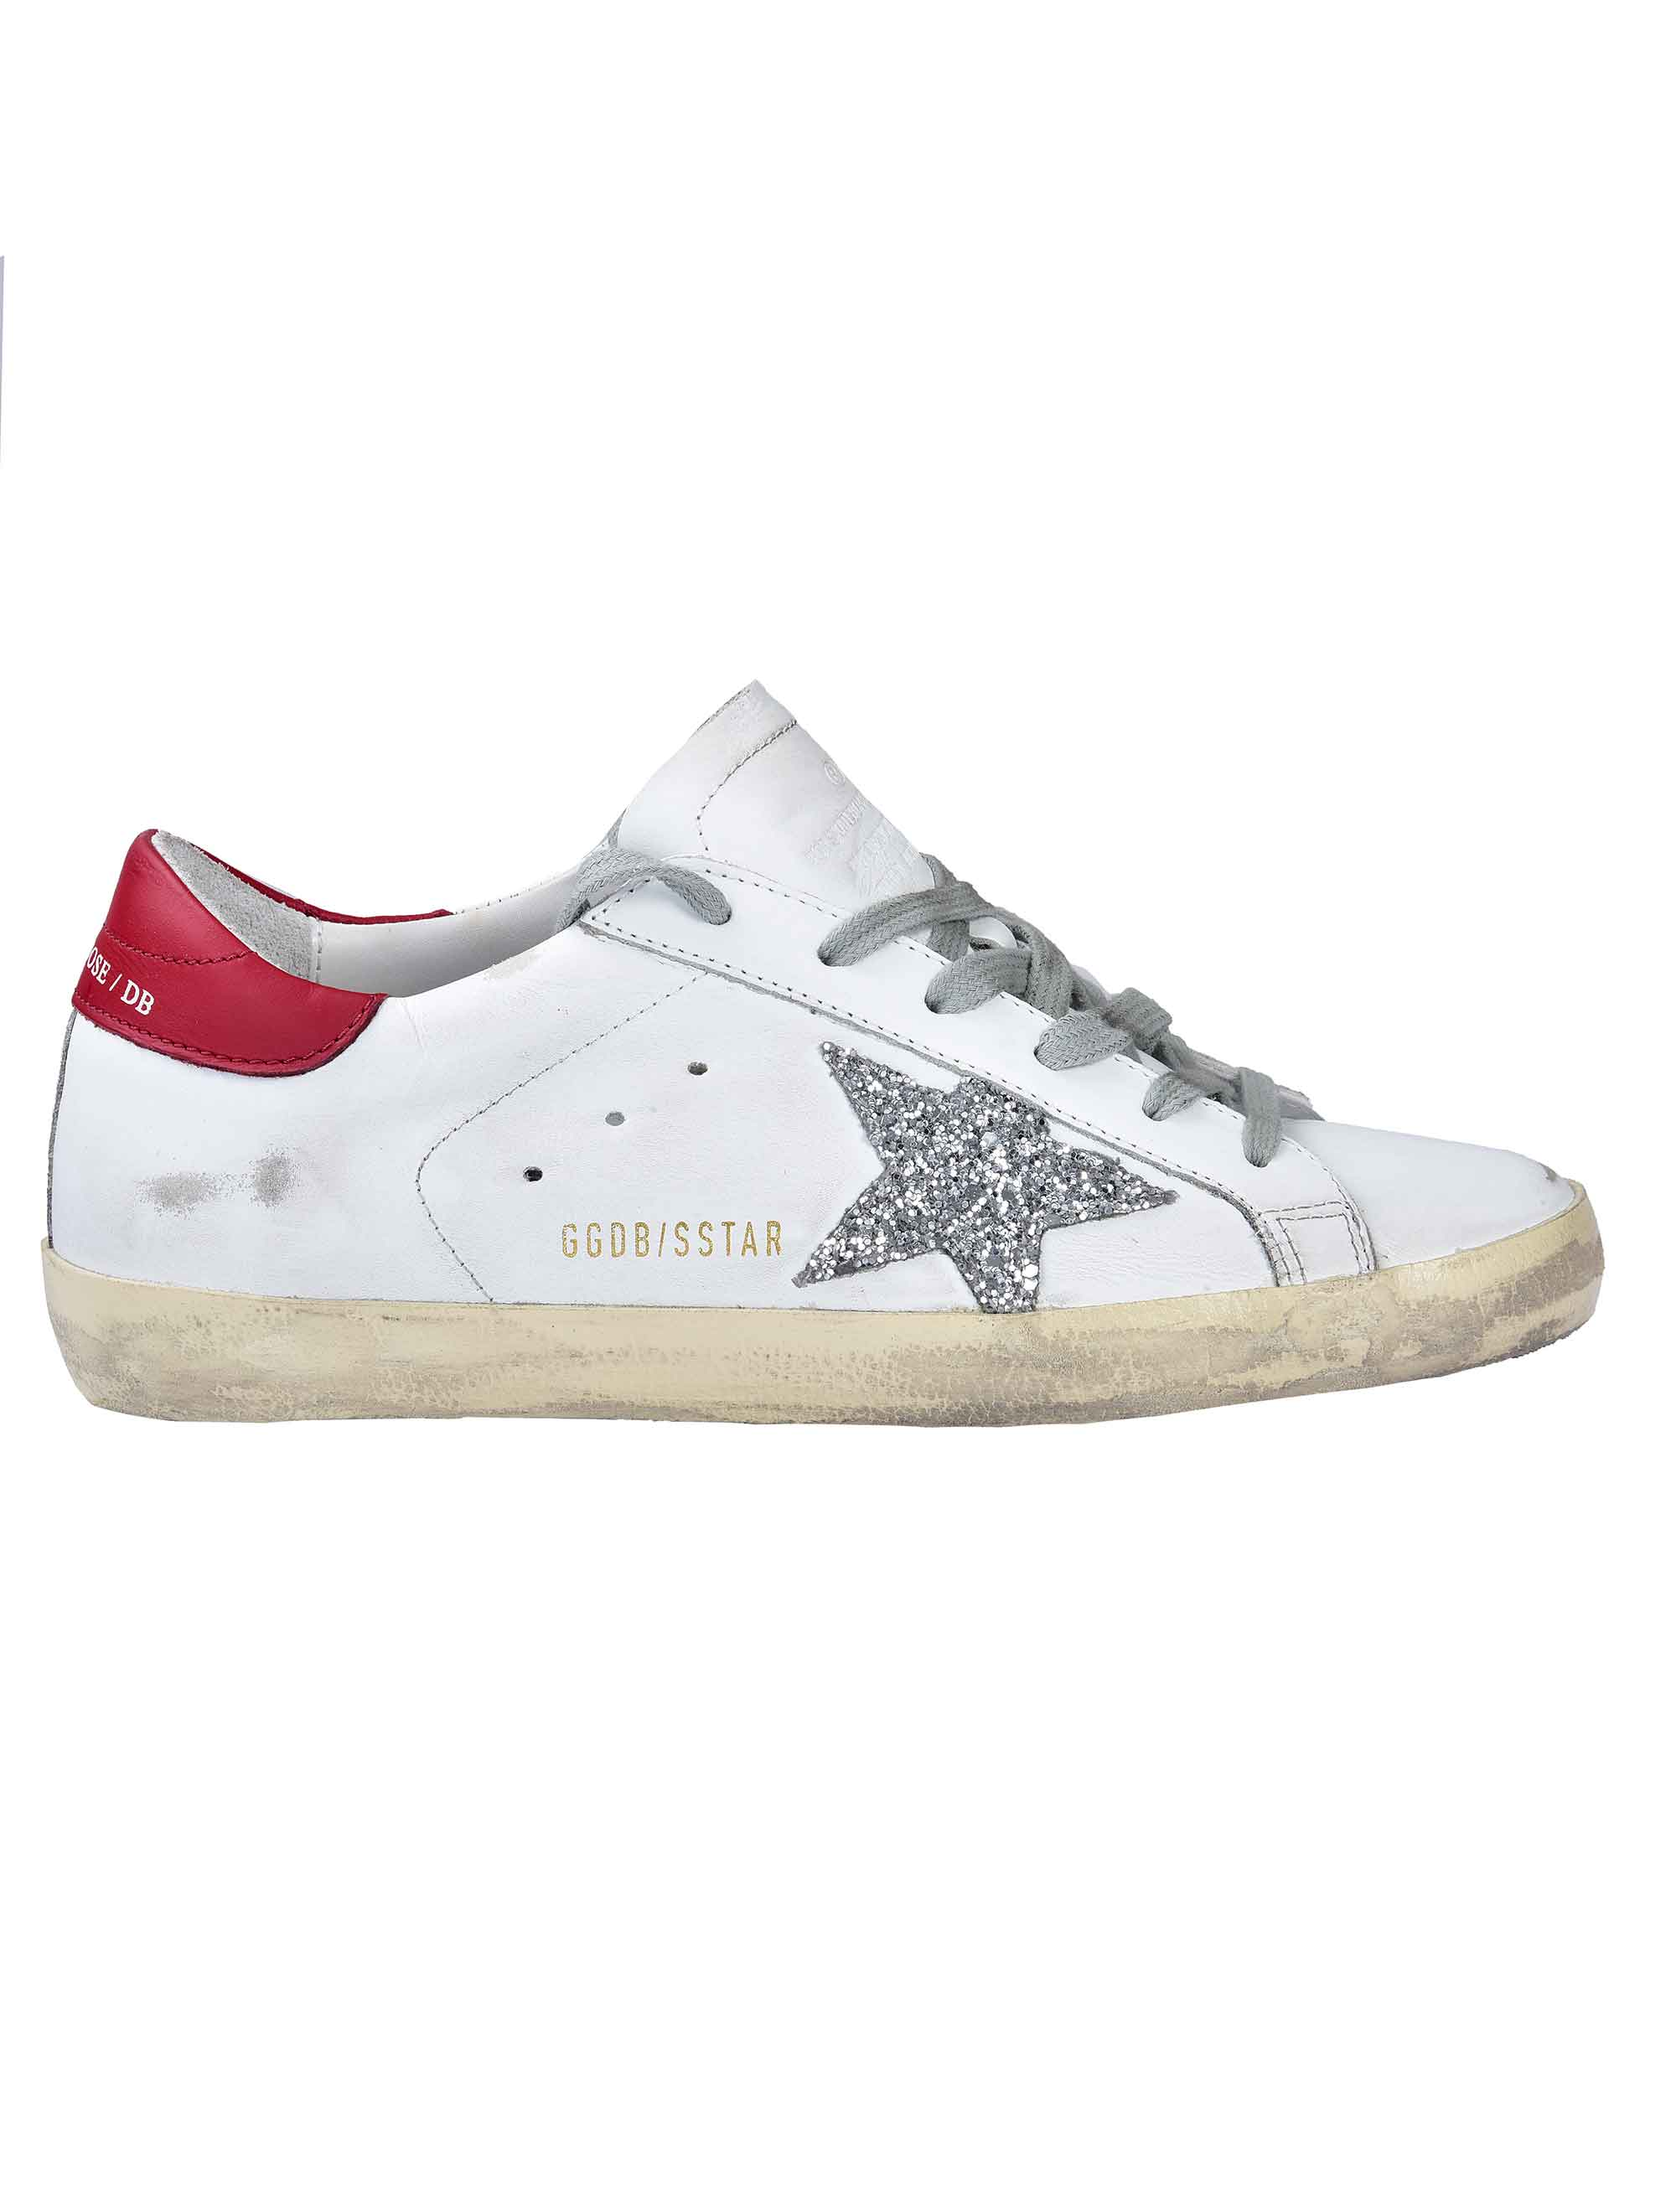 3ede454d09ff Mimma Ninni – Luxury and Fashion Shopping. Golden Goose Deluxe Brand ...